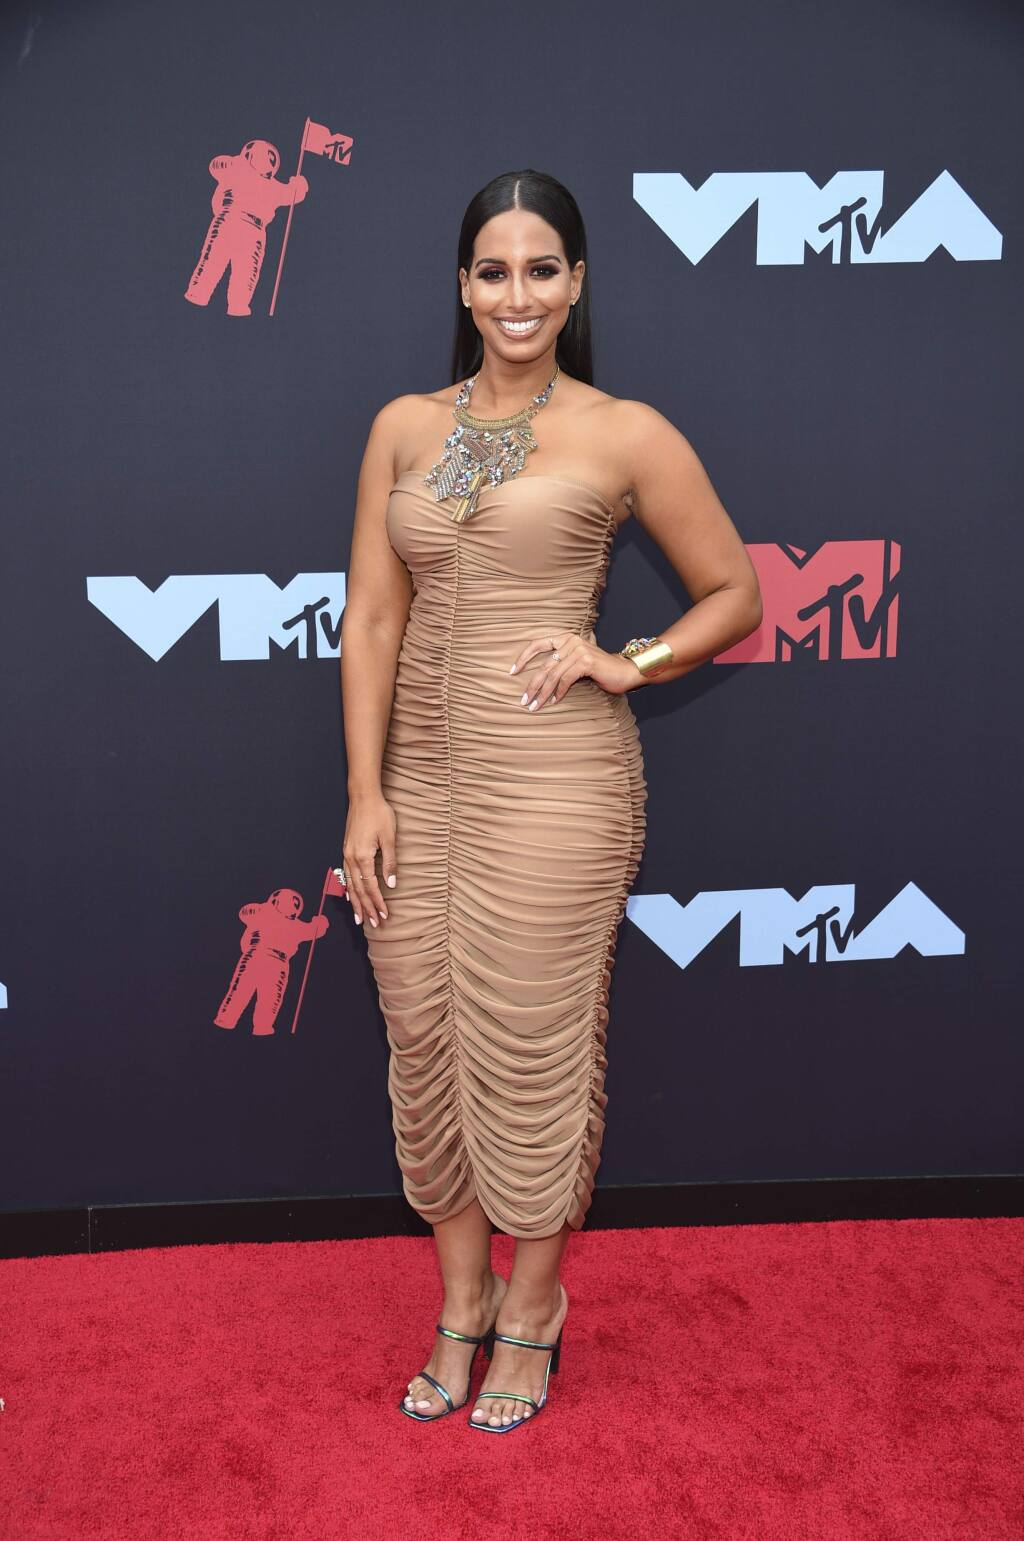 Nessa arrives at the MTV Video Music Awards at the Prudential Center on Monday, Aug. 26, 2019, in Newark, N.J. (Photo by Evan Agostini/Invision/AP)